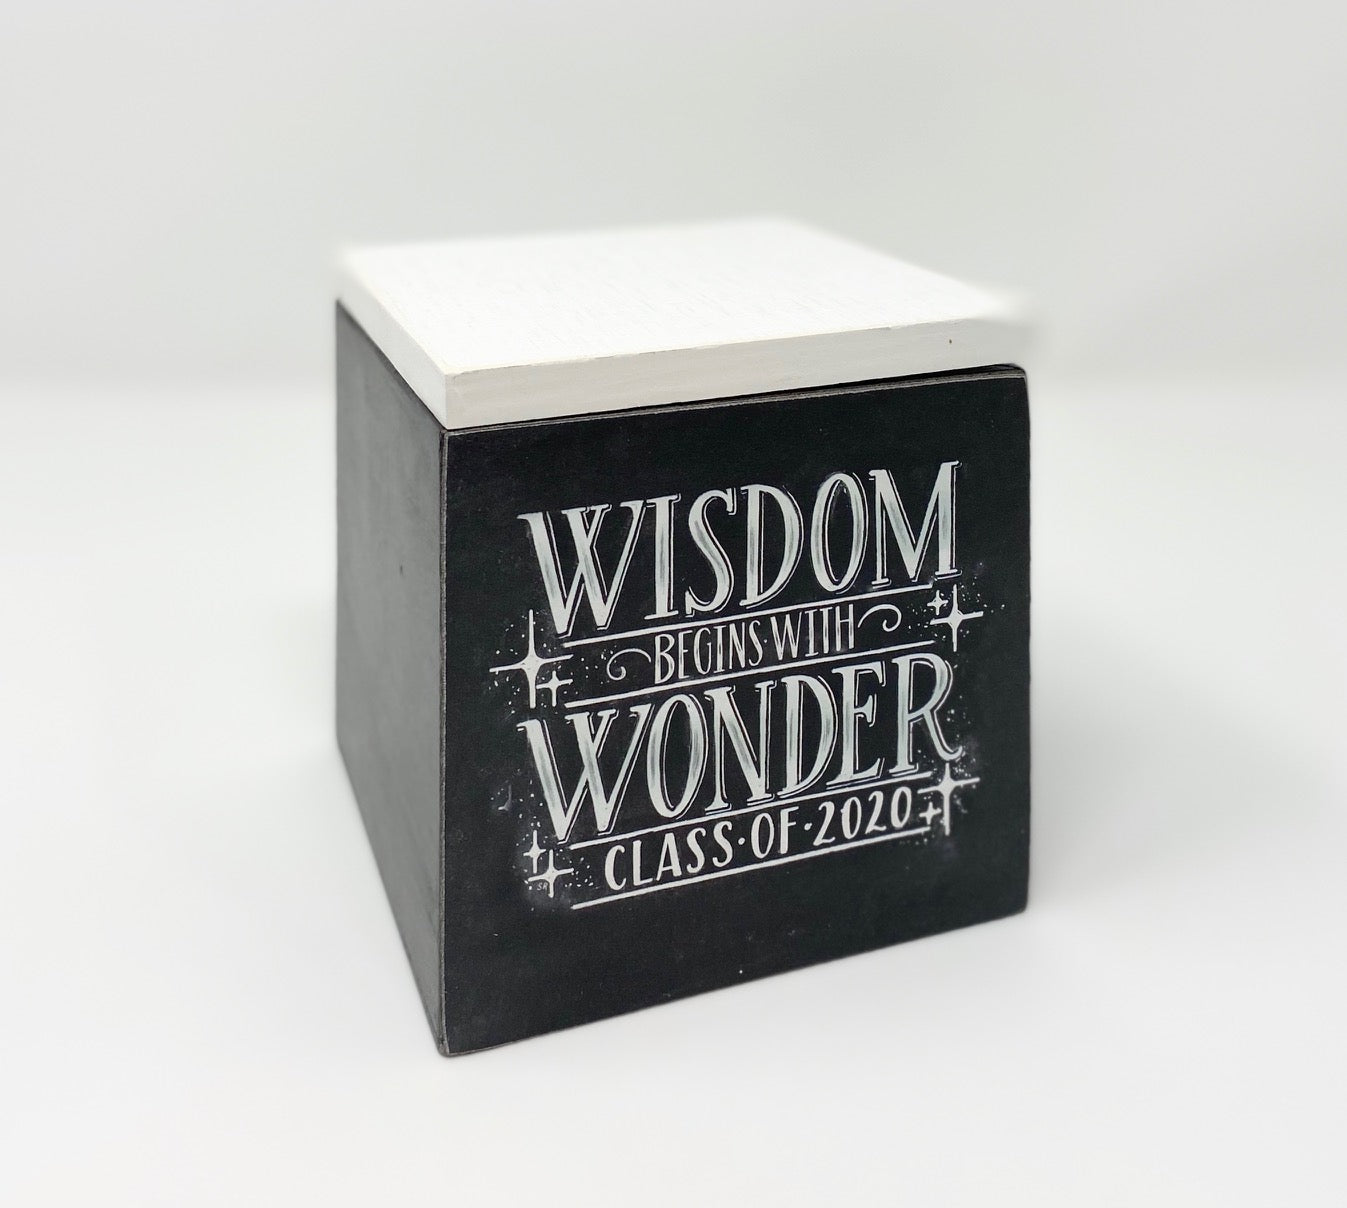 Wisdom Begins With Wonder Class of 2020 Wooden Box